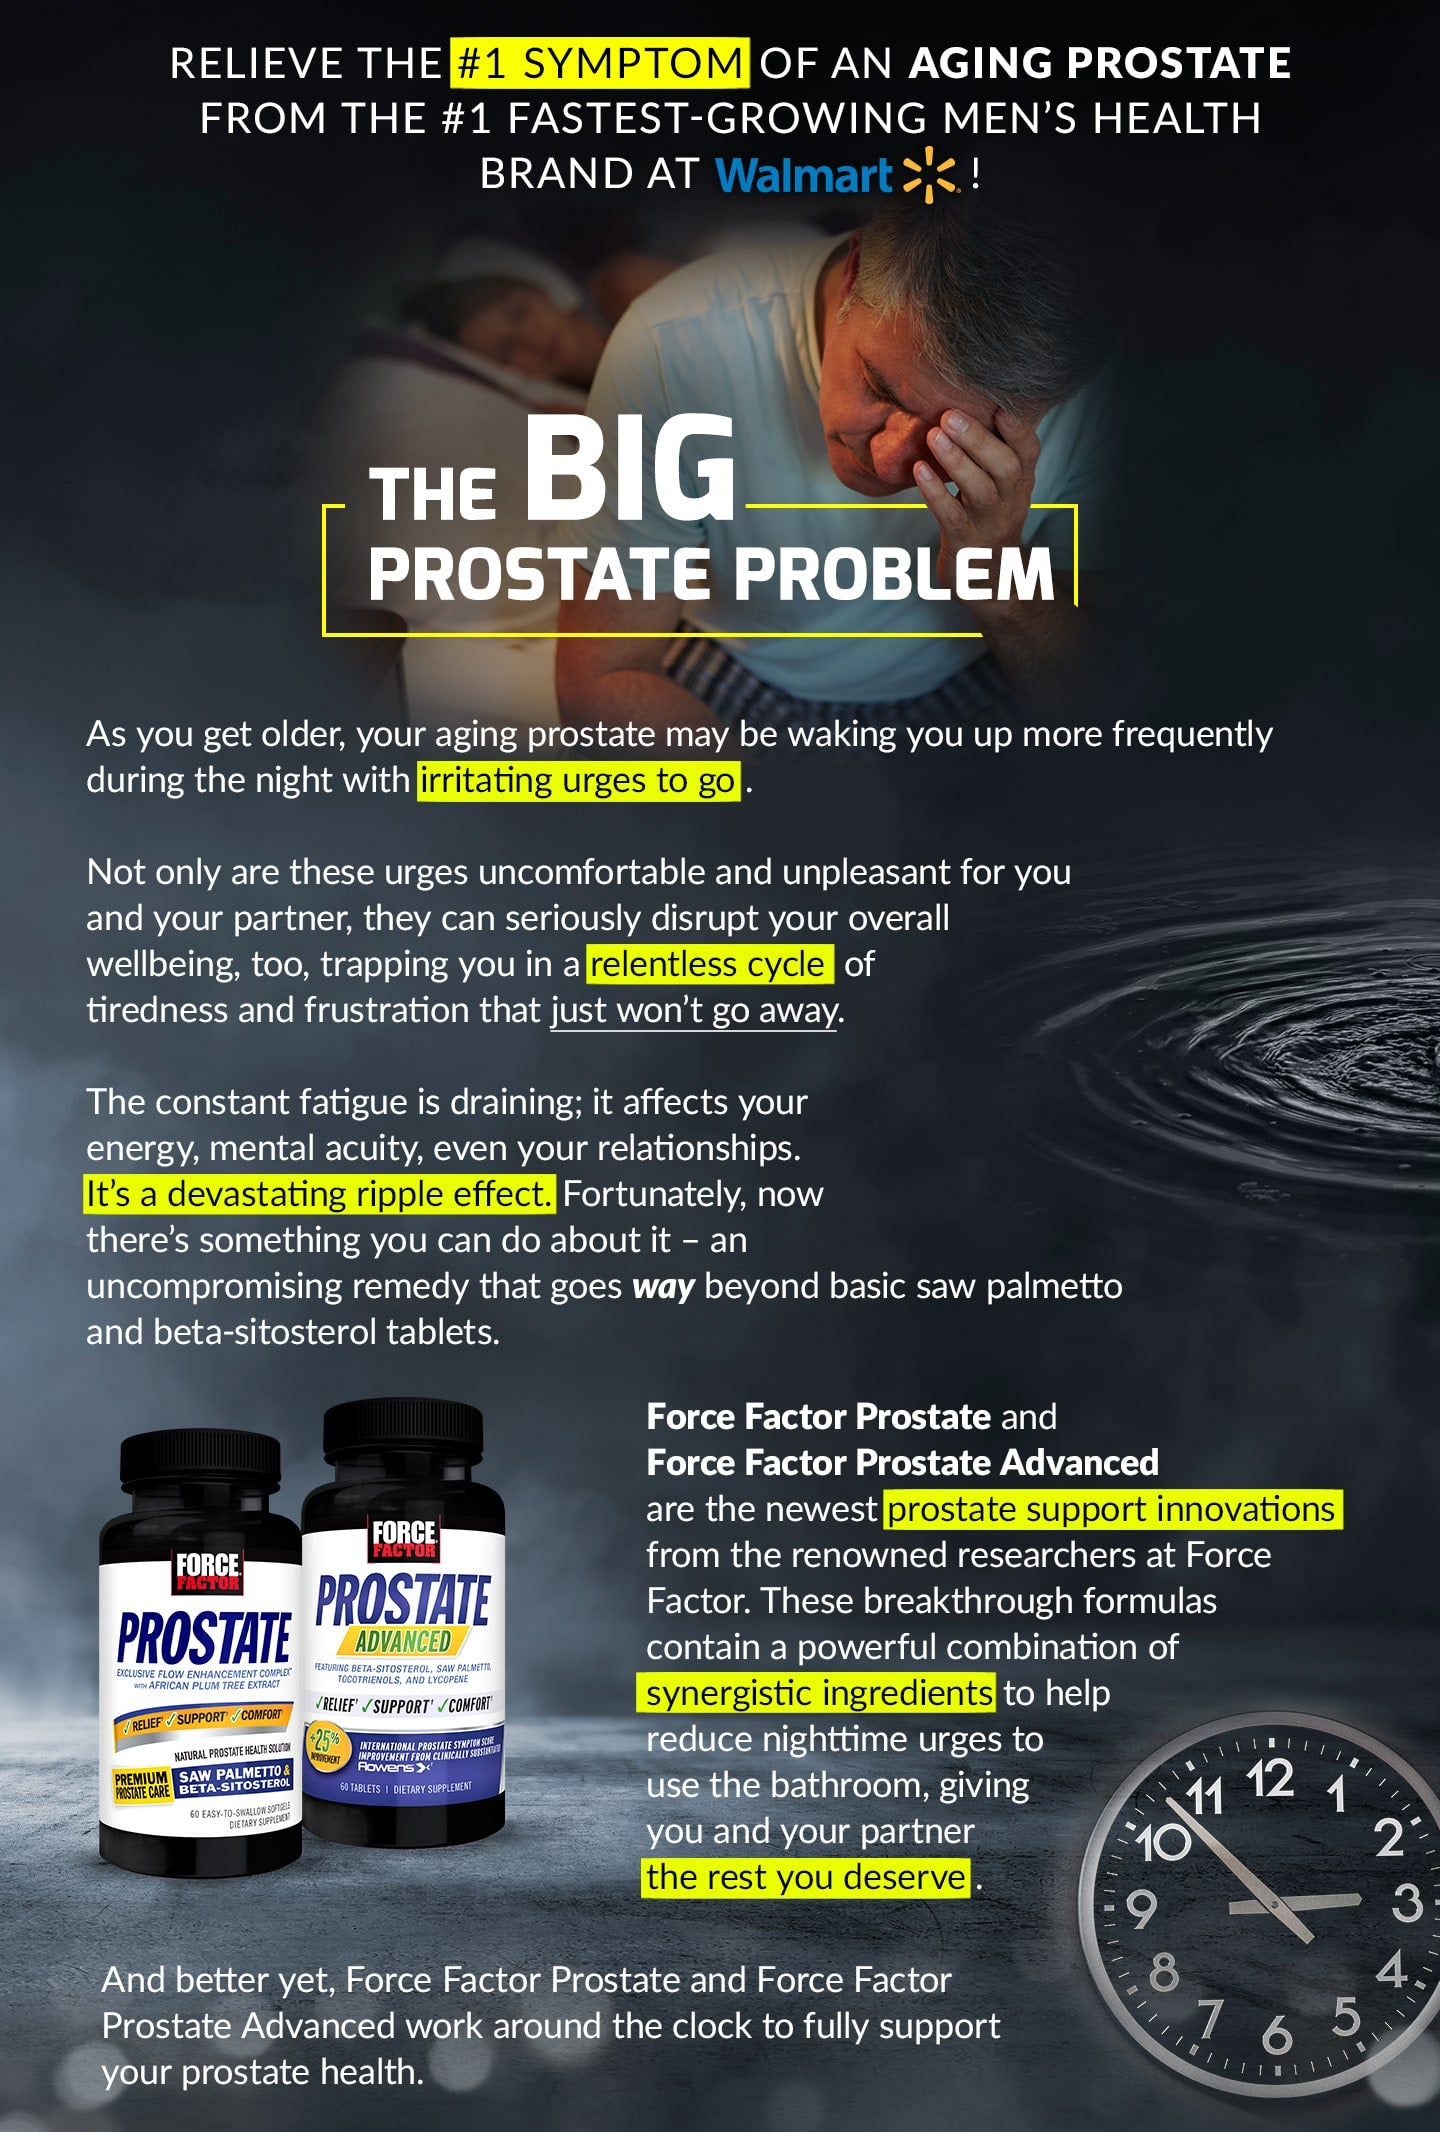 RELIEVE THE #1 SYMPTOM OF AN AGING PROSTATE FROM THE #1 FASTEST-GROWING MEN'S HEALTH BRAND AT WALMART! THE BIG PROSTATE PROBLEM. As you get older, your aging prostate may be waking you up more frequently during the night with irritating urges to go. Not only are these urges uncomfortable and unpleasant for you and your partner, they can seriously disrupt your overall wellbeing, too, trapping you in a relentless cycle of tiredness and frustration that just won't go away. The constant fatigue is draining; it affects your energy, mental acuity, even your relationships. It's a devastating ripple effect. Fortunately, now there's something you can do about it – an uncompromising remedy that goes way beyond basic saw palmetto and beta-sitosterol tablets. Force Factor Prostate and Force Factor Prostate Advanced are the newest prostate support innovations from the renowned researchers at Force Factor. These breakthrough formulas contain a powerful combination of synergistic ingredients to help reduce nighttime urges to use the bathroom, giving you and your partner the rest you deserve. And better yet, Force Factor Prostate and Force Factor Prostate Advanced work around the clock to fully support your prostate health.